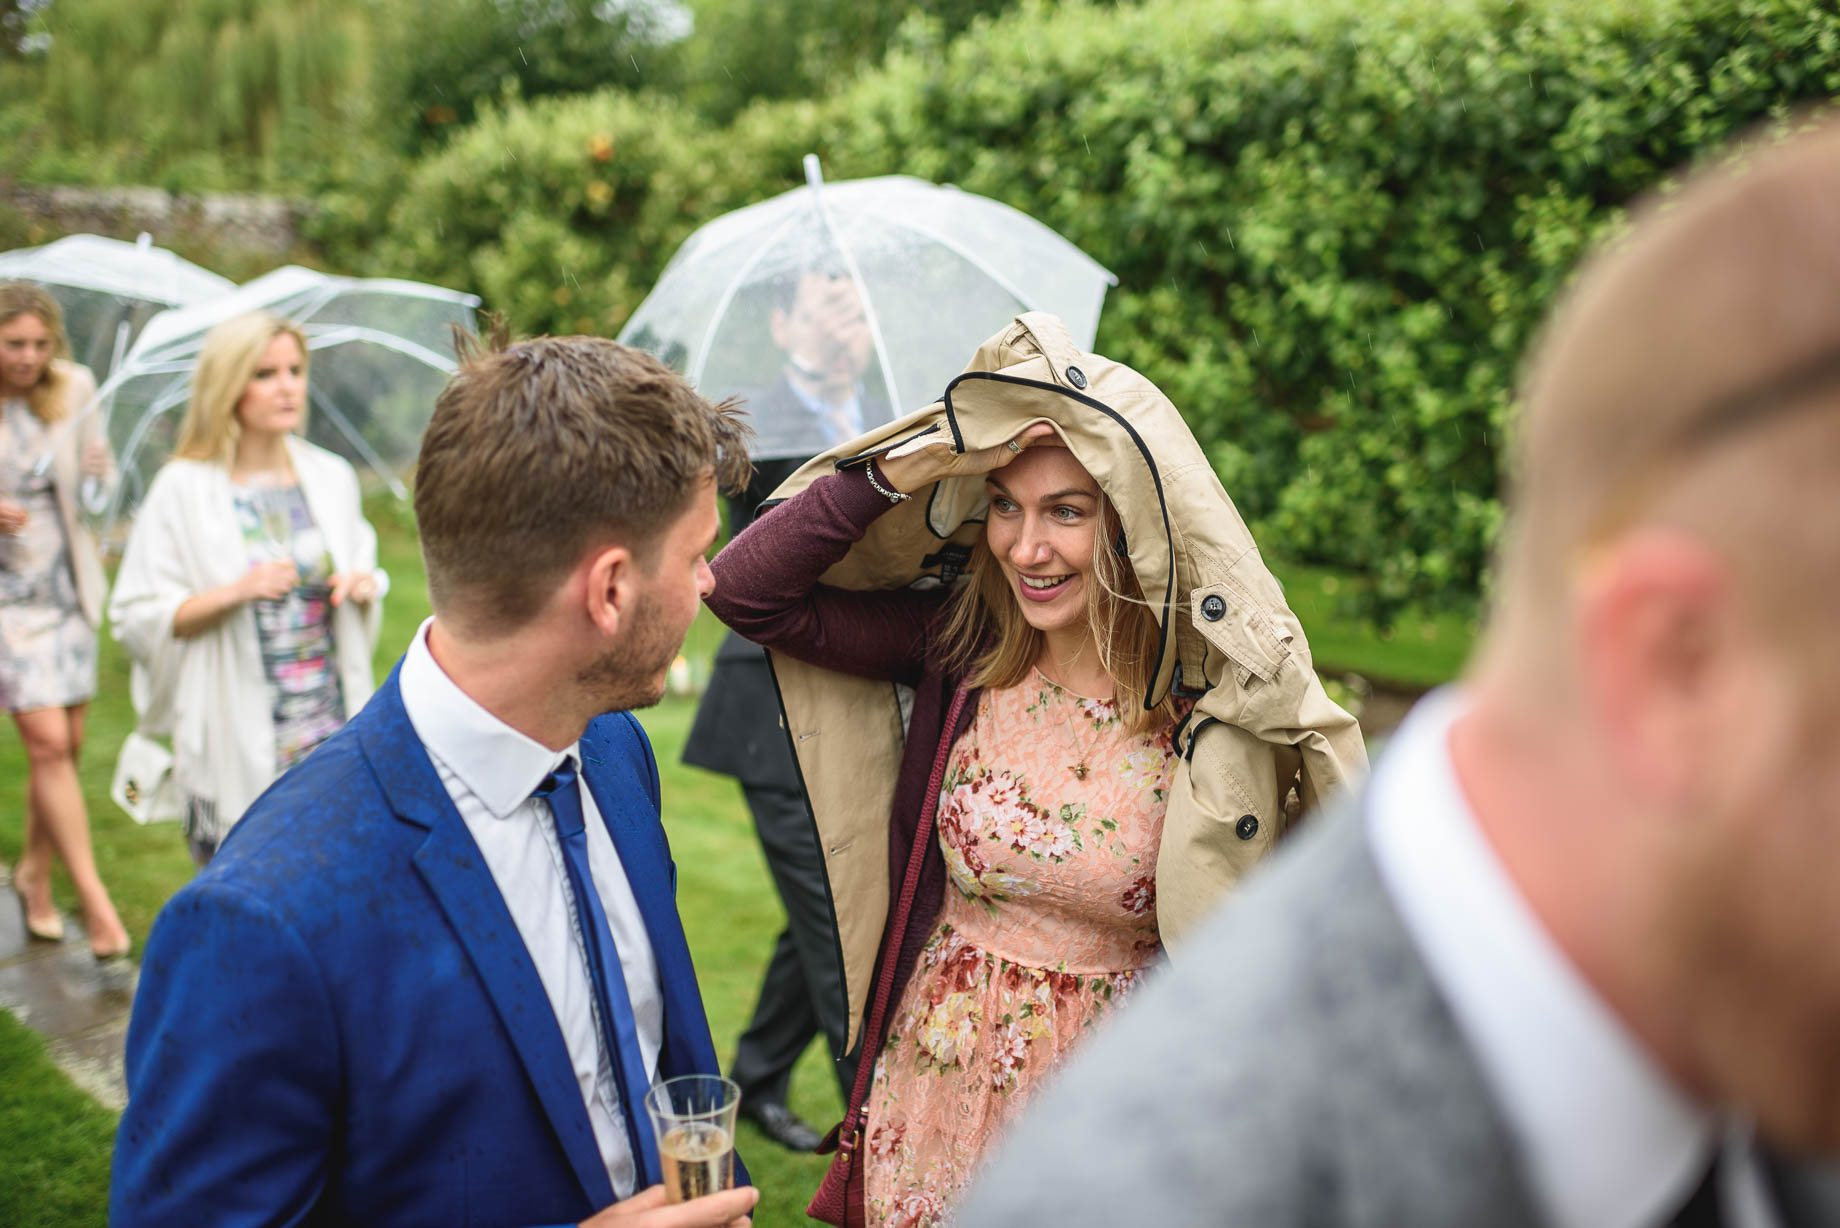 surrey-wedding-photography-guy-collier-photography-claire-and-tom-146-of-227